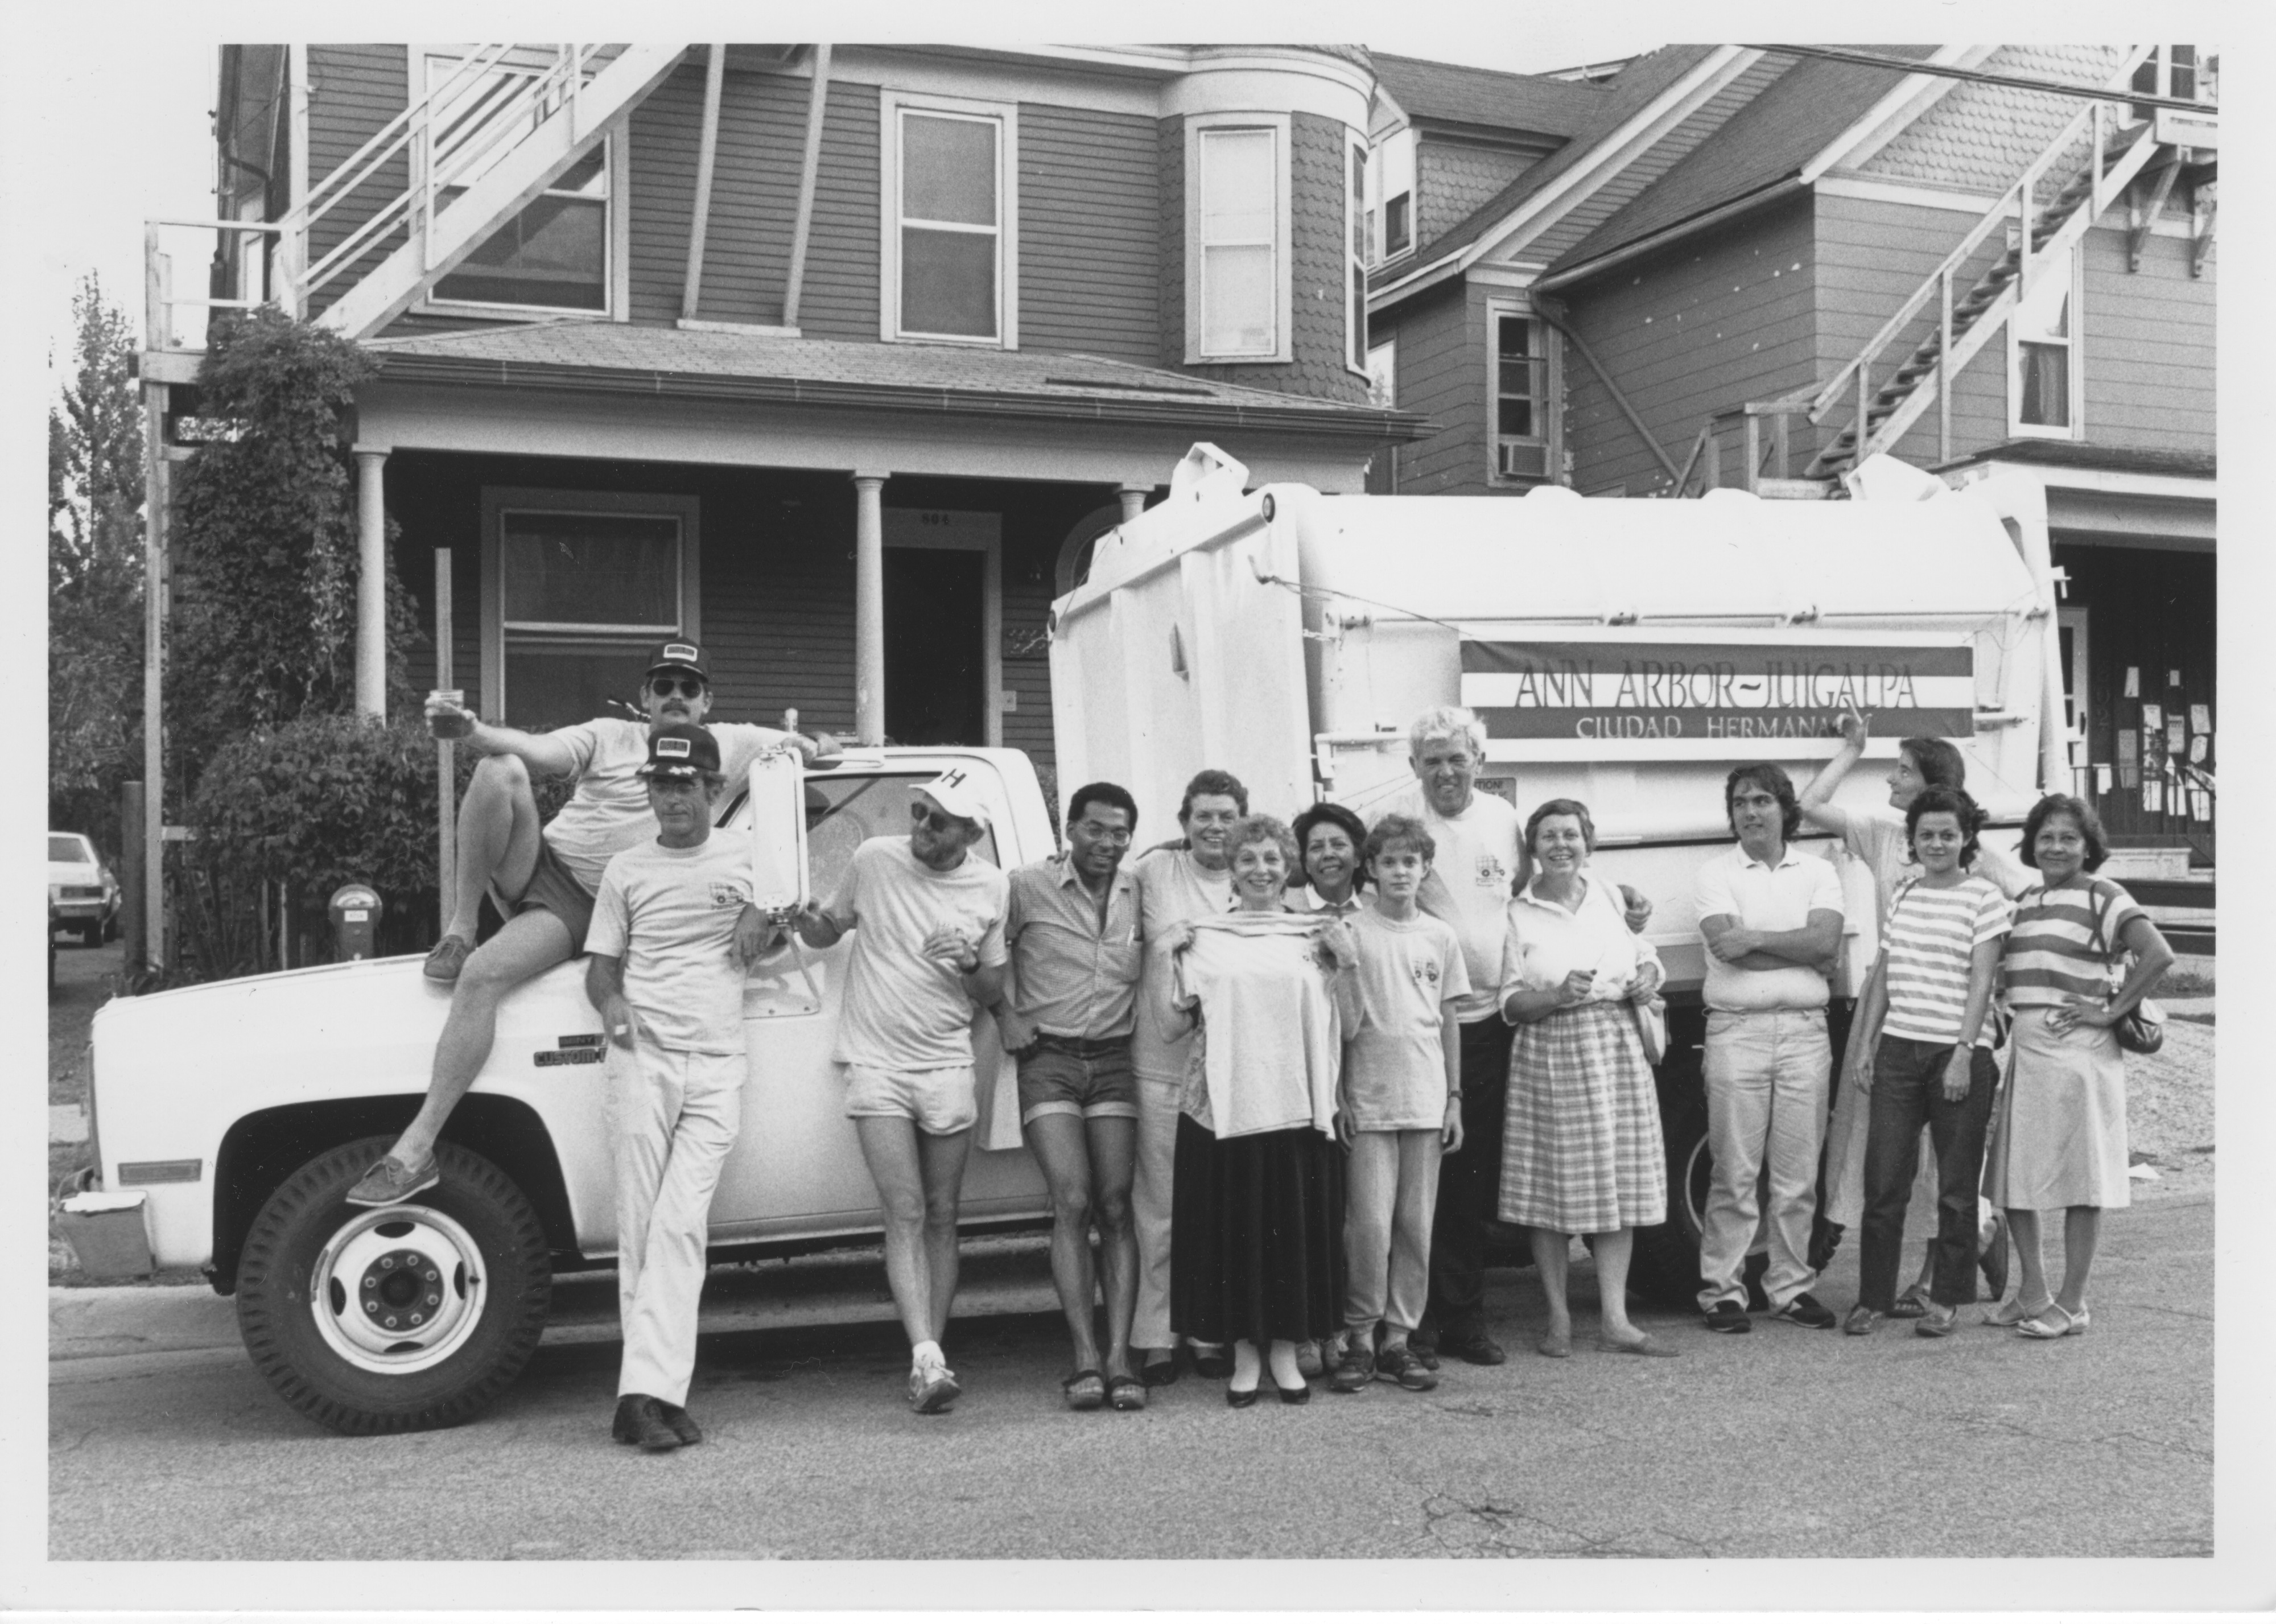 Interfaith Council for Peace and Justice: Garbage Truck - gift from Ann Arbor to Juigalpa, 1987 image